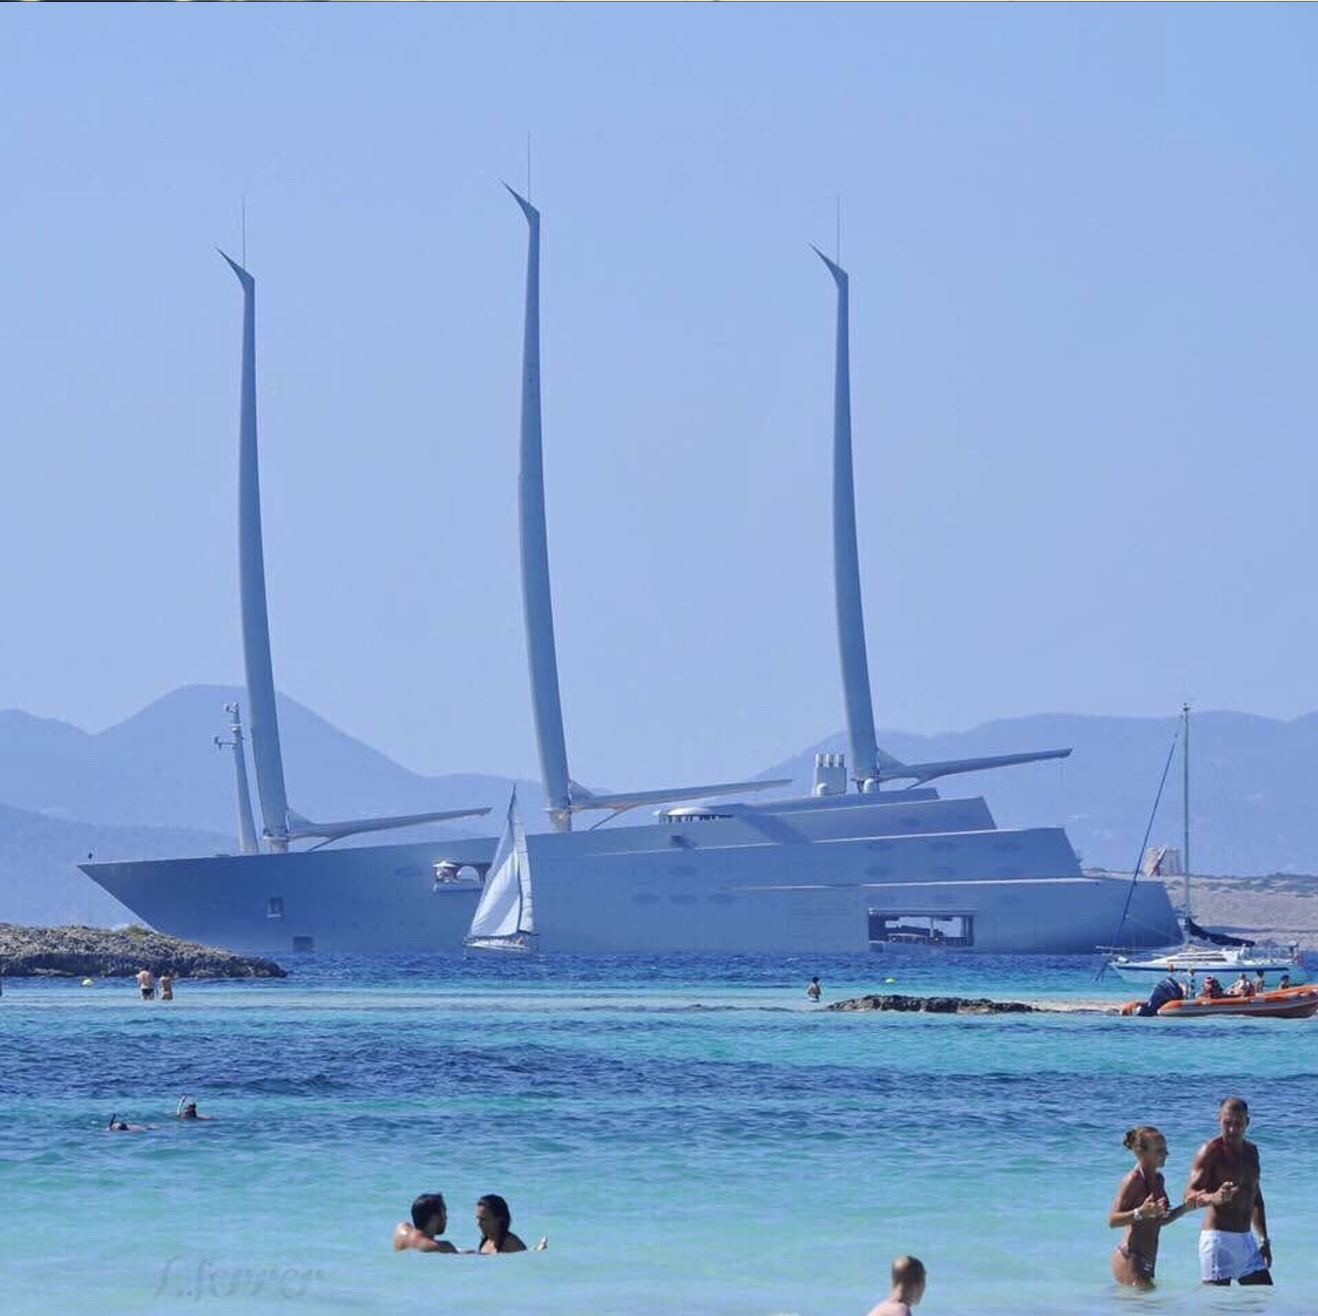 Sailing Yacht A >> Sailing Yacht A Surprised Formentera S Visitors Yacht